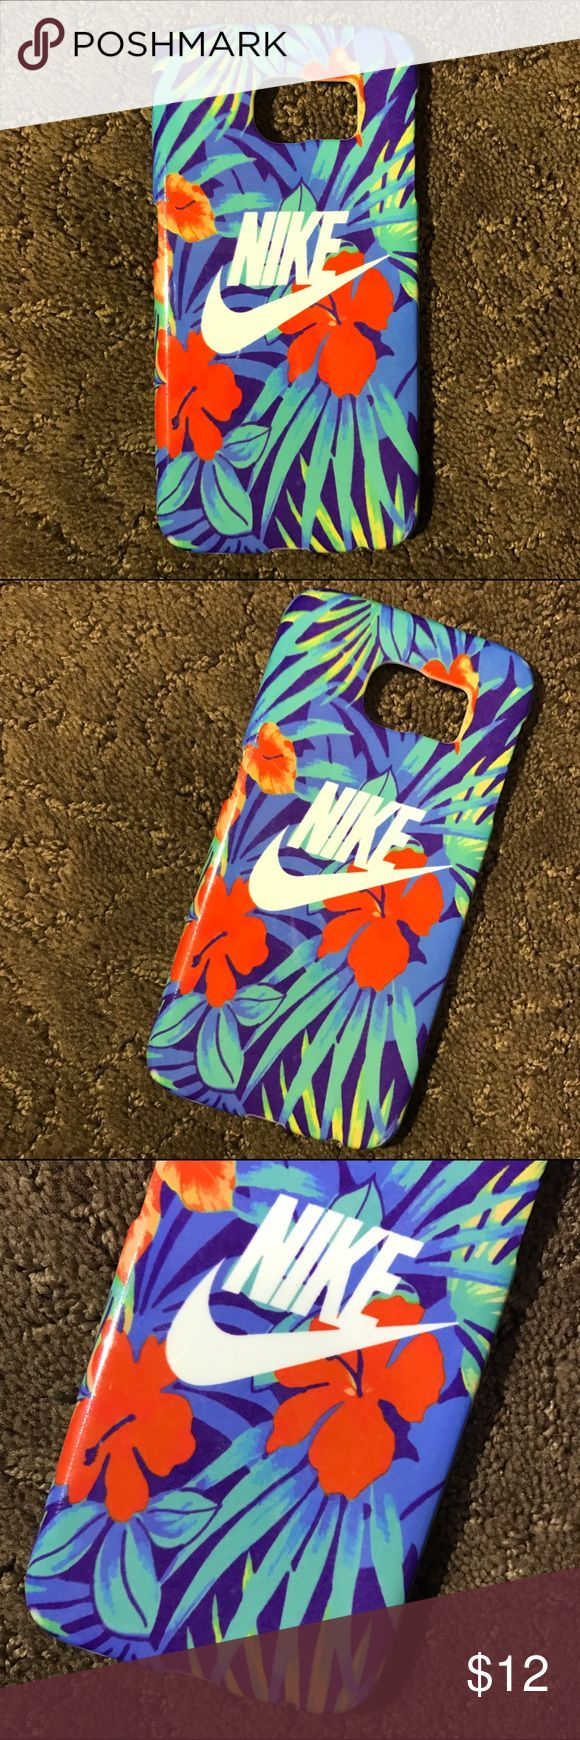 Nik Hawaiian floral case for ANY Samsung phong!! PLEASE READ **  This case is available for the SamSung Galaxy s6 / s7 / s7 Edge / s7 / and note 7. Please after you purchase let me know for what phone you need. Nike Accessories Phone Cases